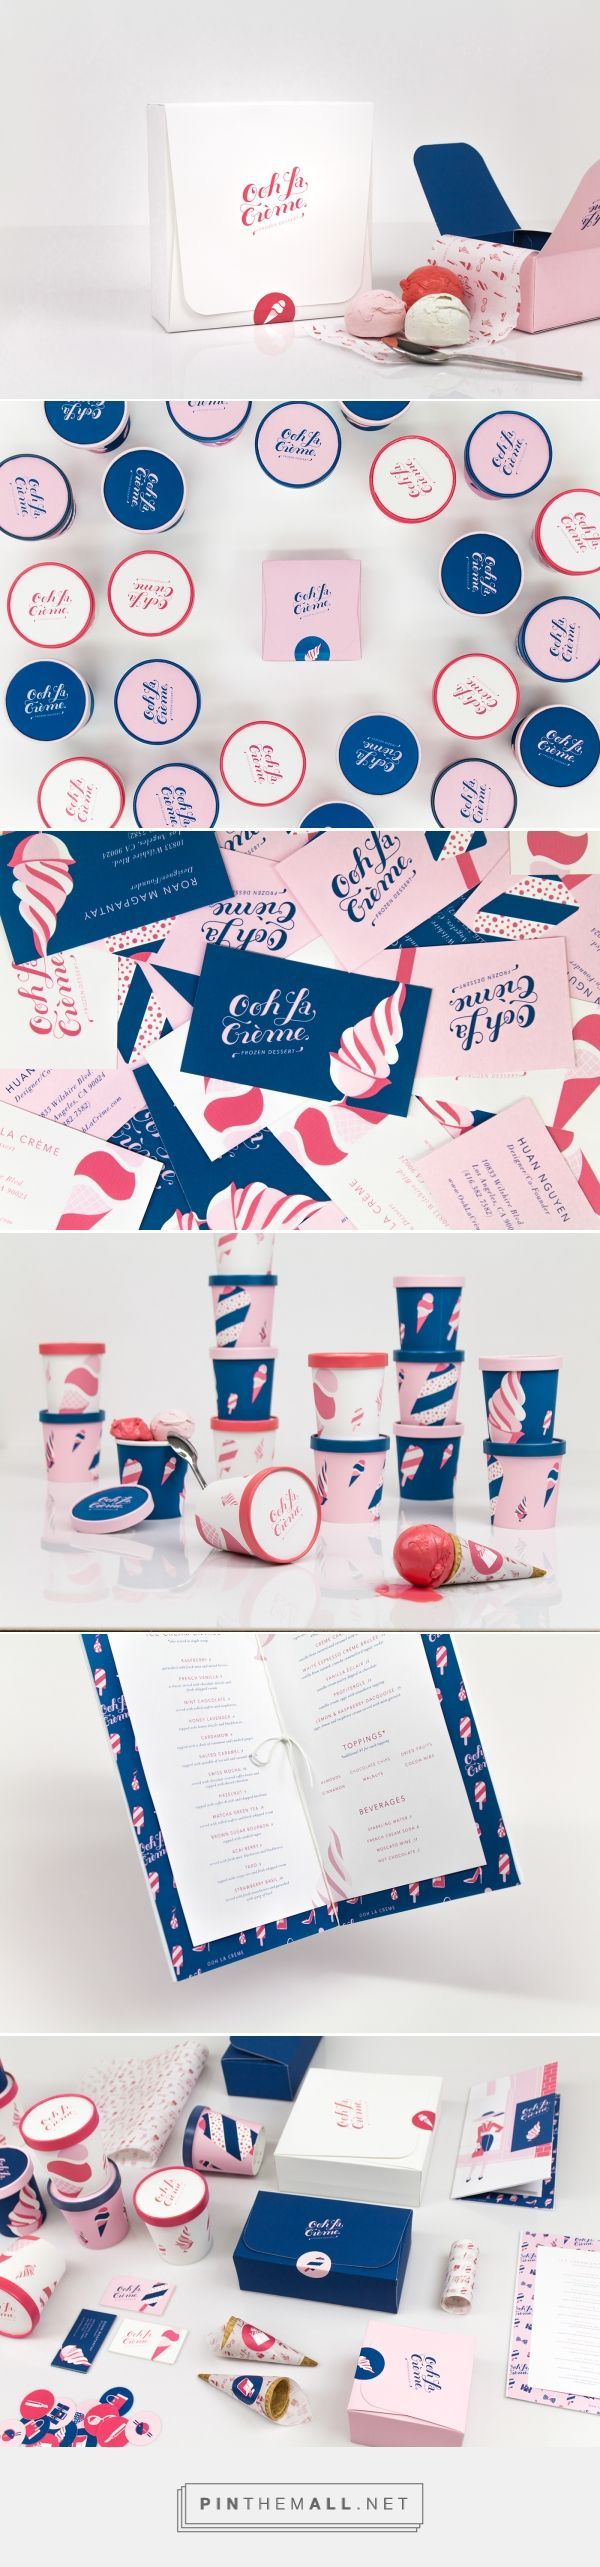 Ooh La Creme Ice Cream Shop Branding and Packaging by Huan Nguyen | Fivestar Branding Agency – Design and Branding Agency & Curated Inspiration Gallery